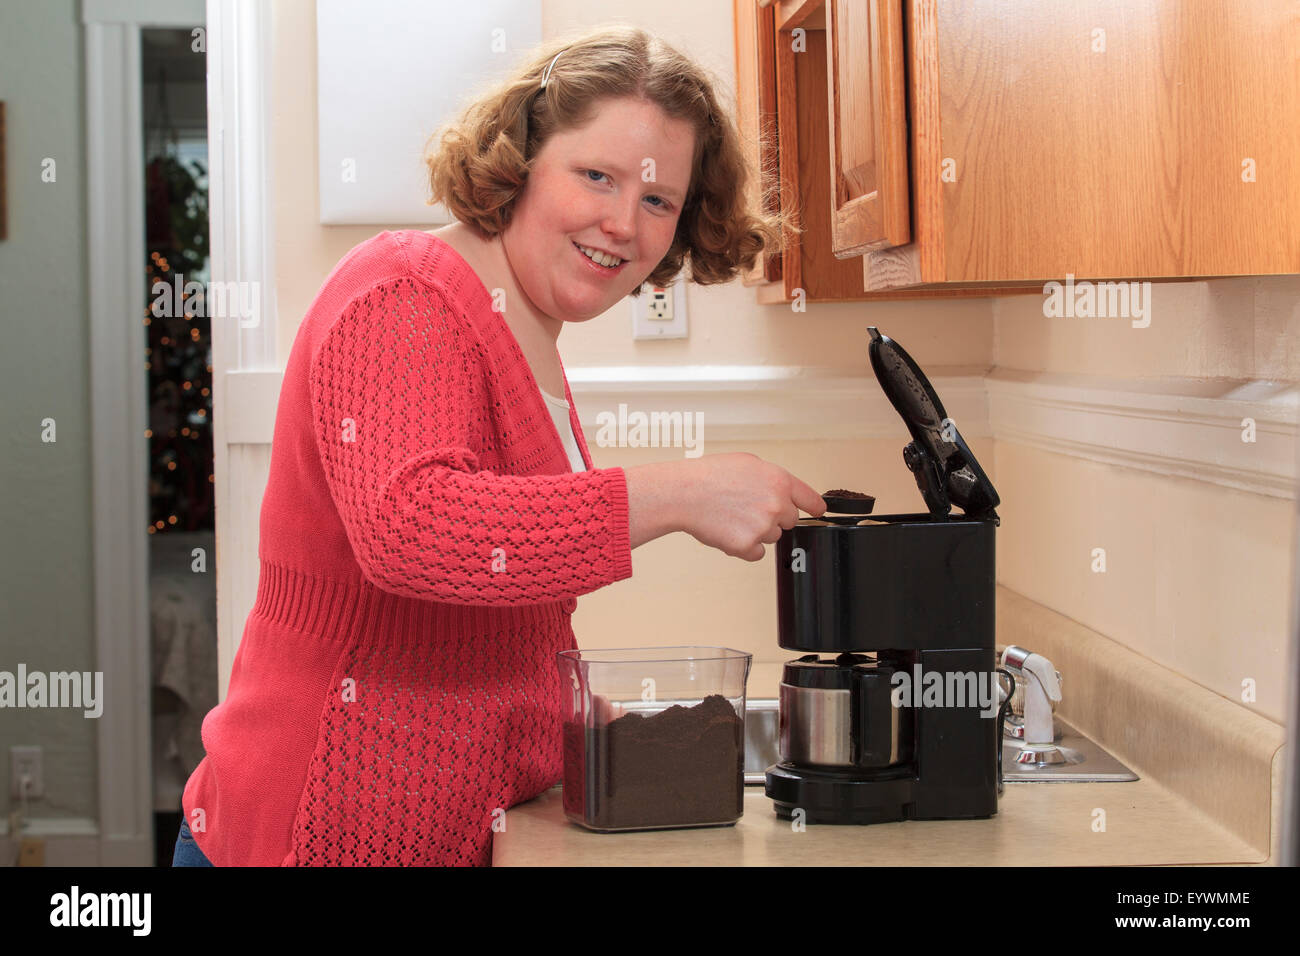 Young woman with Autism making coffee in her kitchen - Stock Image